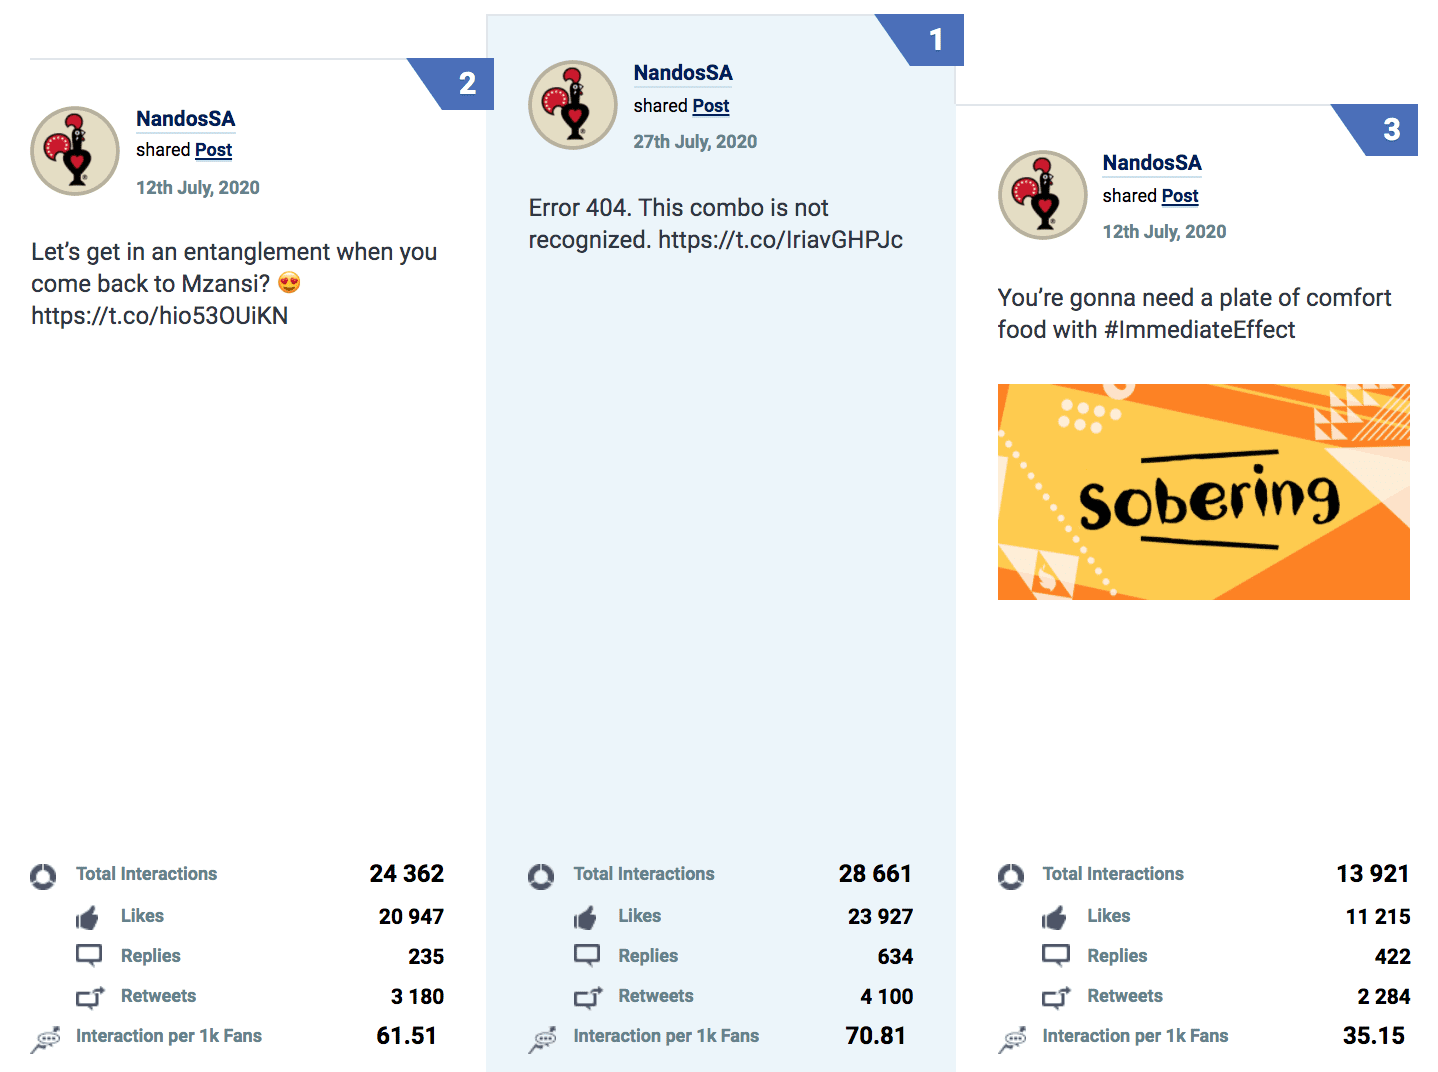 Bra Willy Seyama | eNitiate | Socialbakers | Top 3 Twitter Posts by Interactions in July | South Africa | 21 Aug 2020